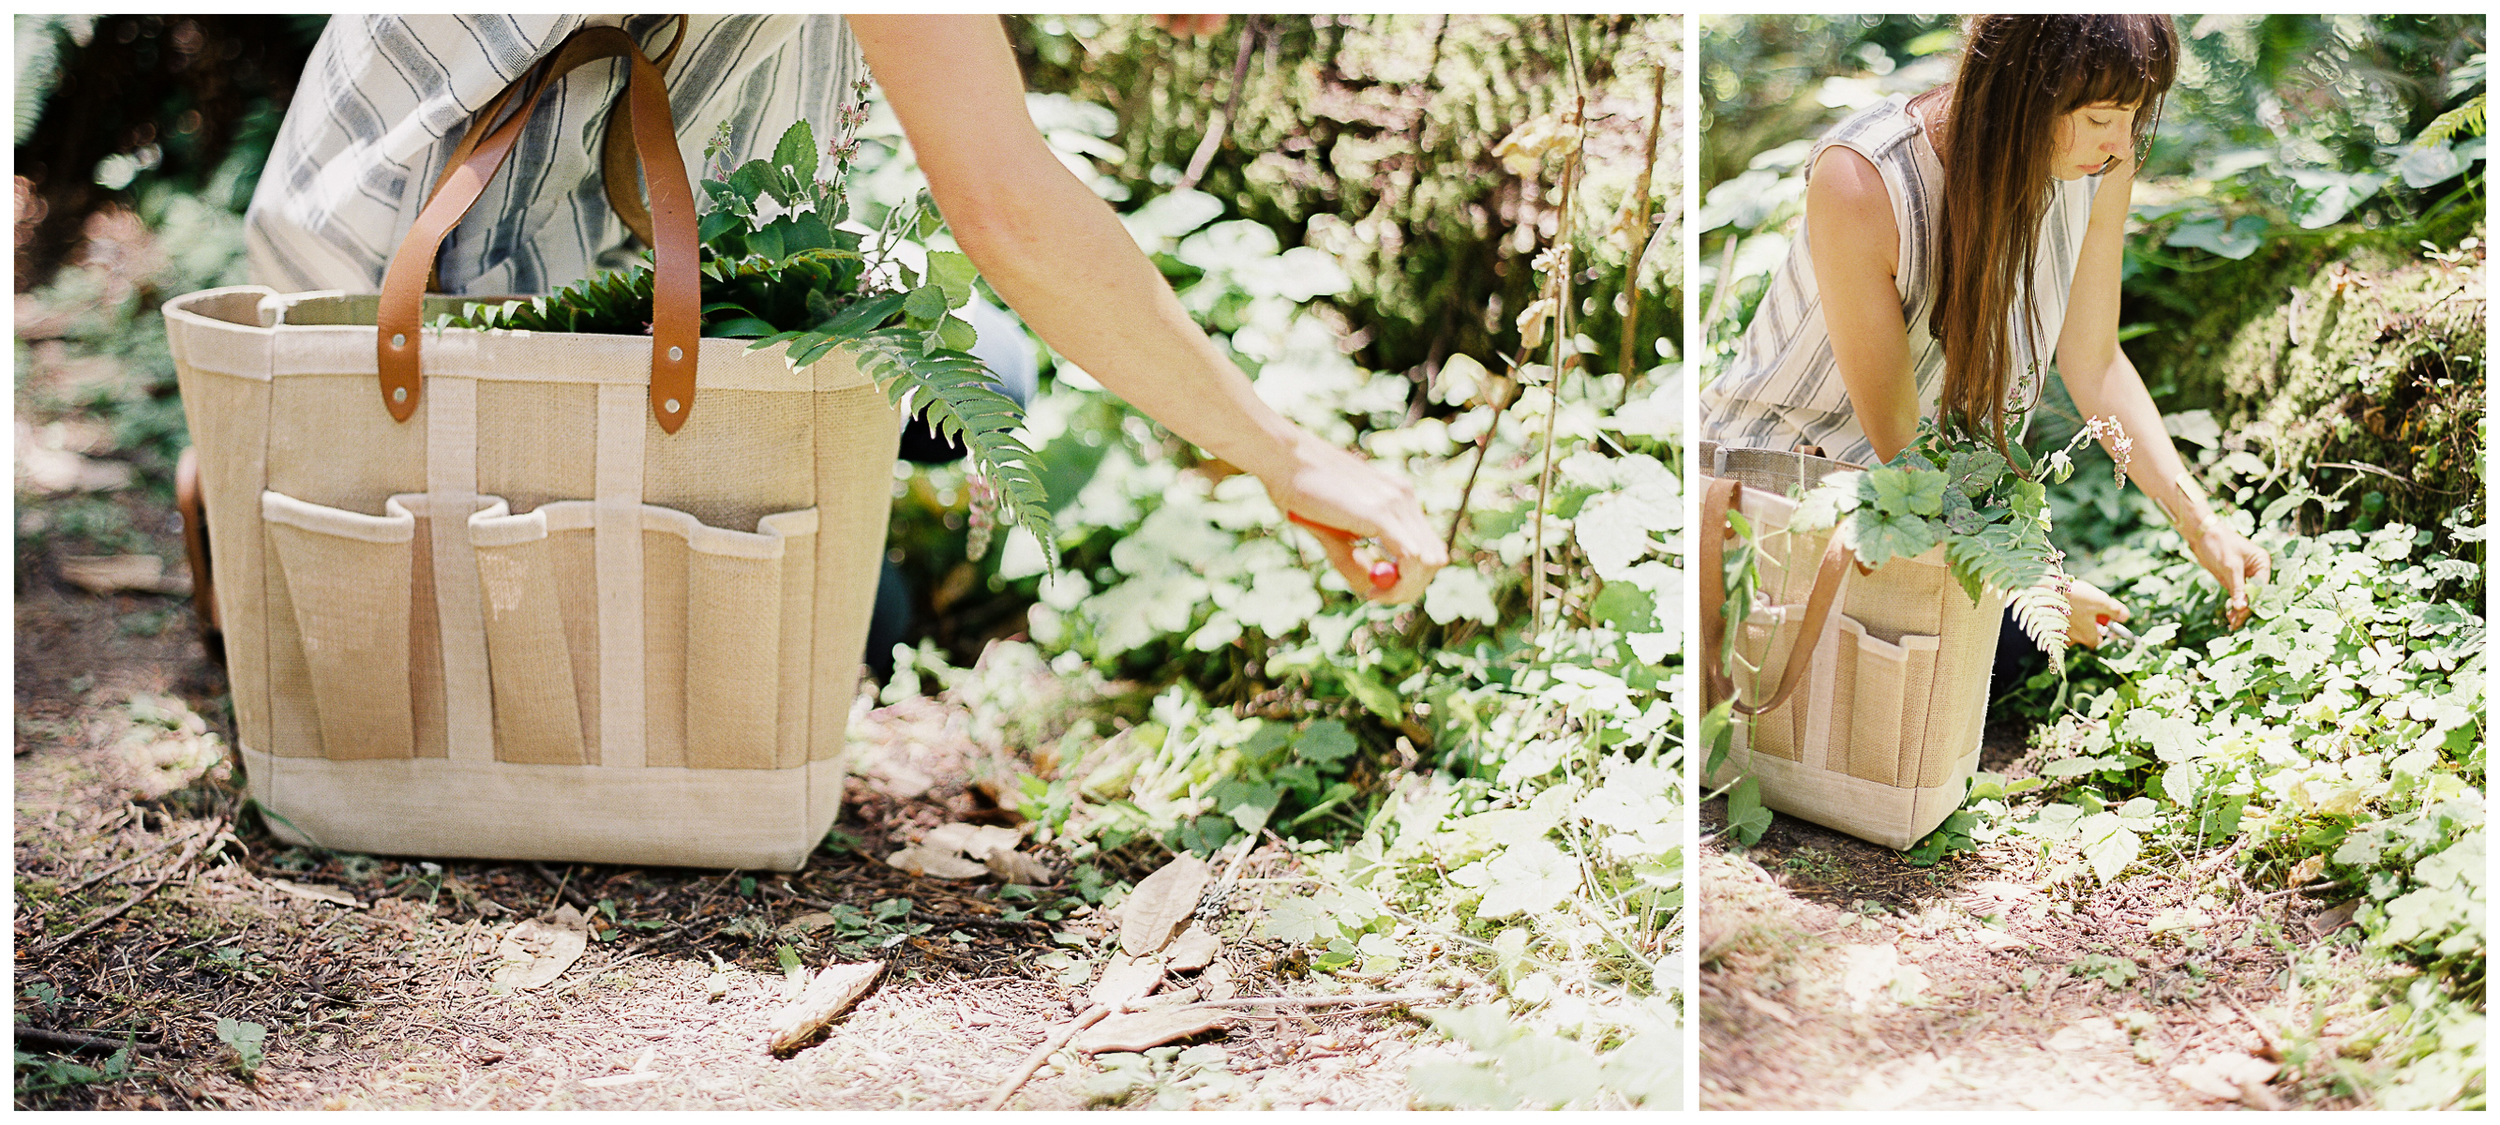 Meghan Mehan Fine Art Film Photography | San Francisco | Napa | Sonoma - blog layout 2up2.jpg